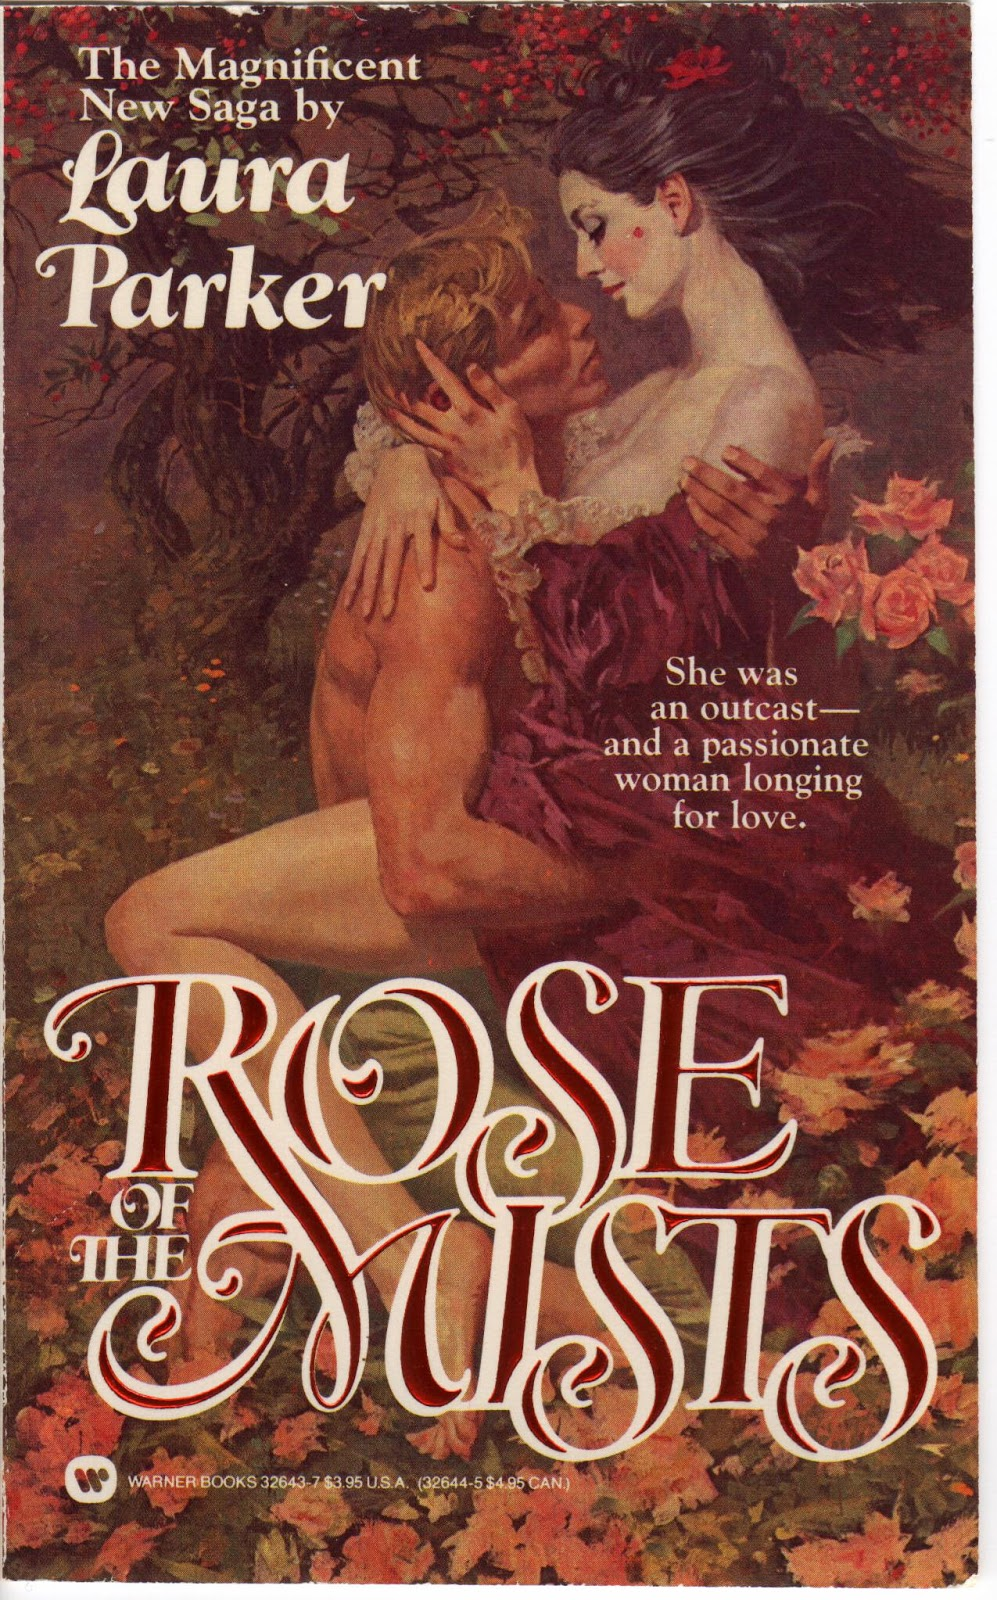 HISTORICAL ROMANCE REVIEW with Regan Walker: New Review: Laura